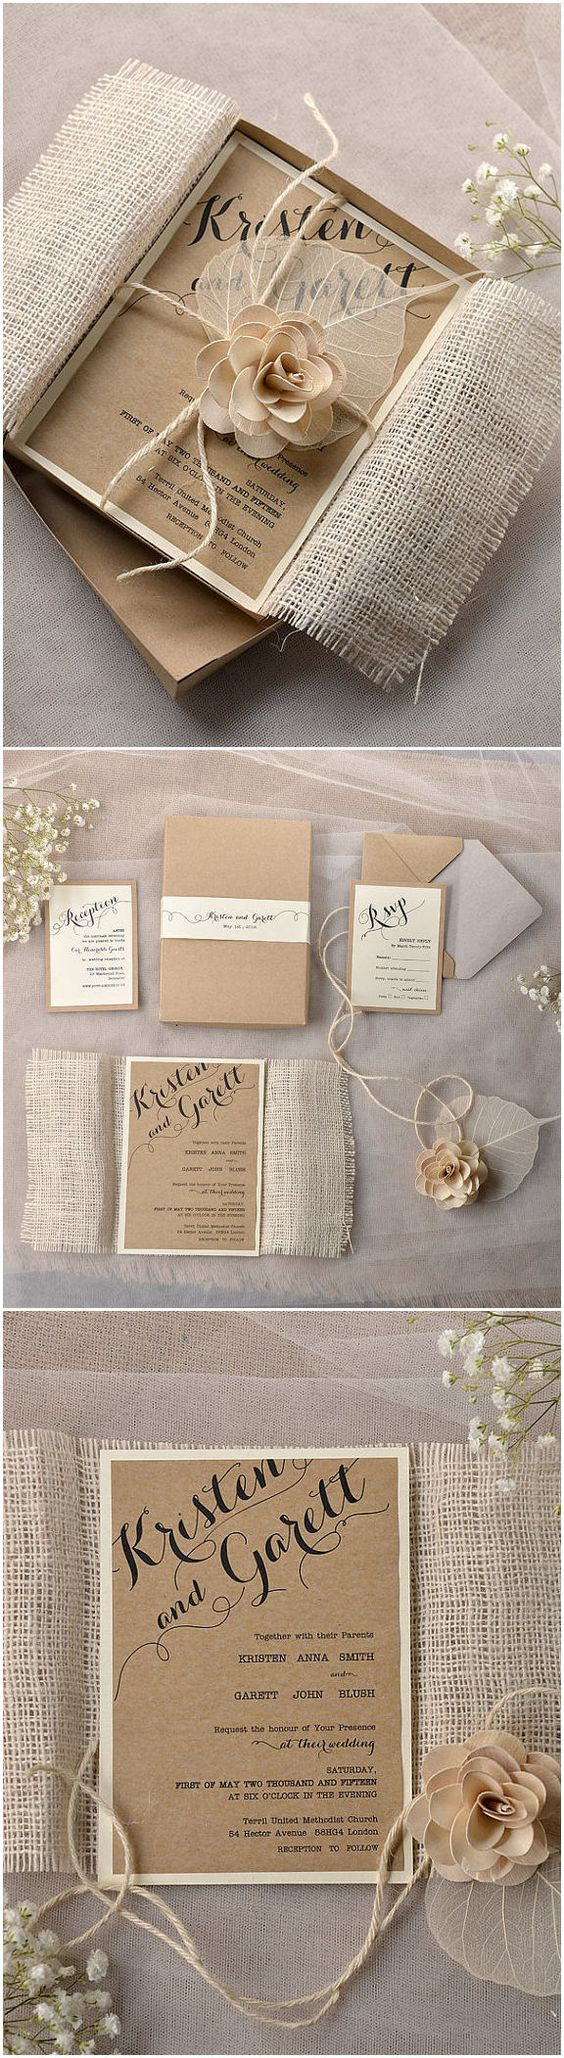 diy rustic wedding invitations burlap%0A wedding invitation doesn t say and guest